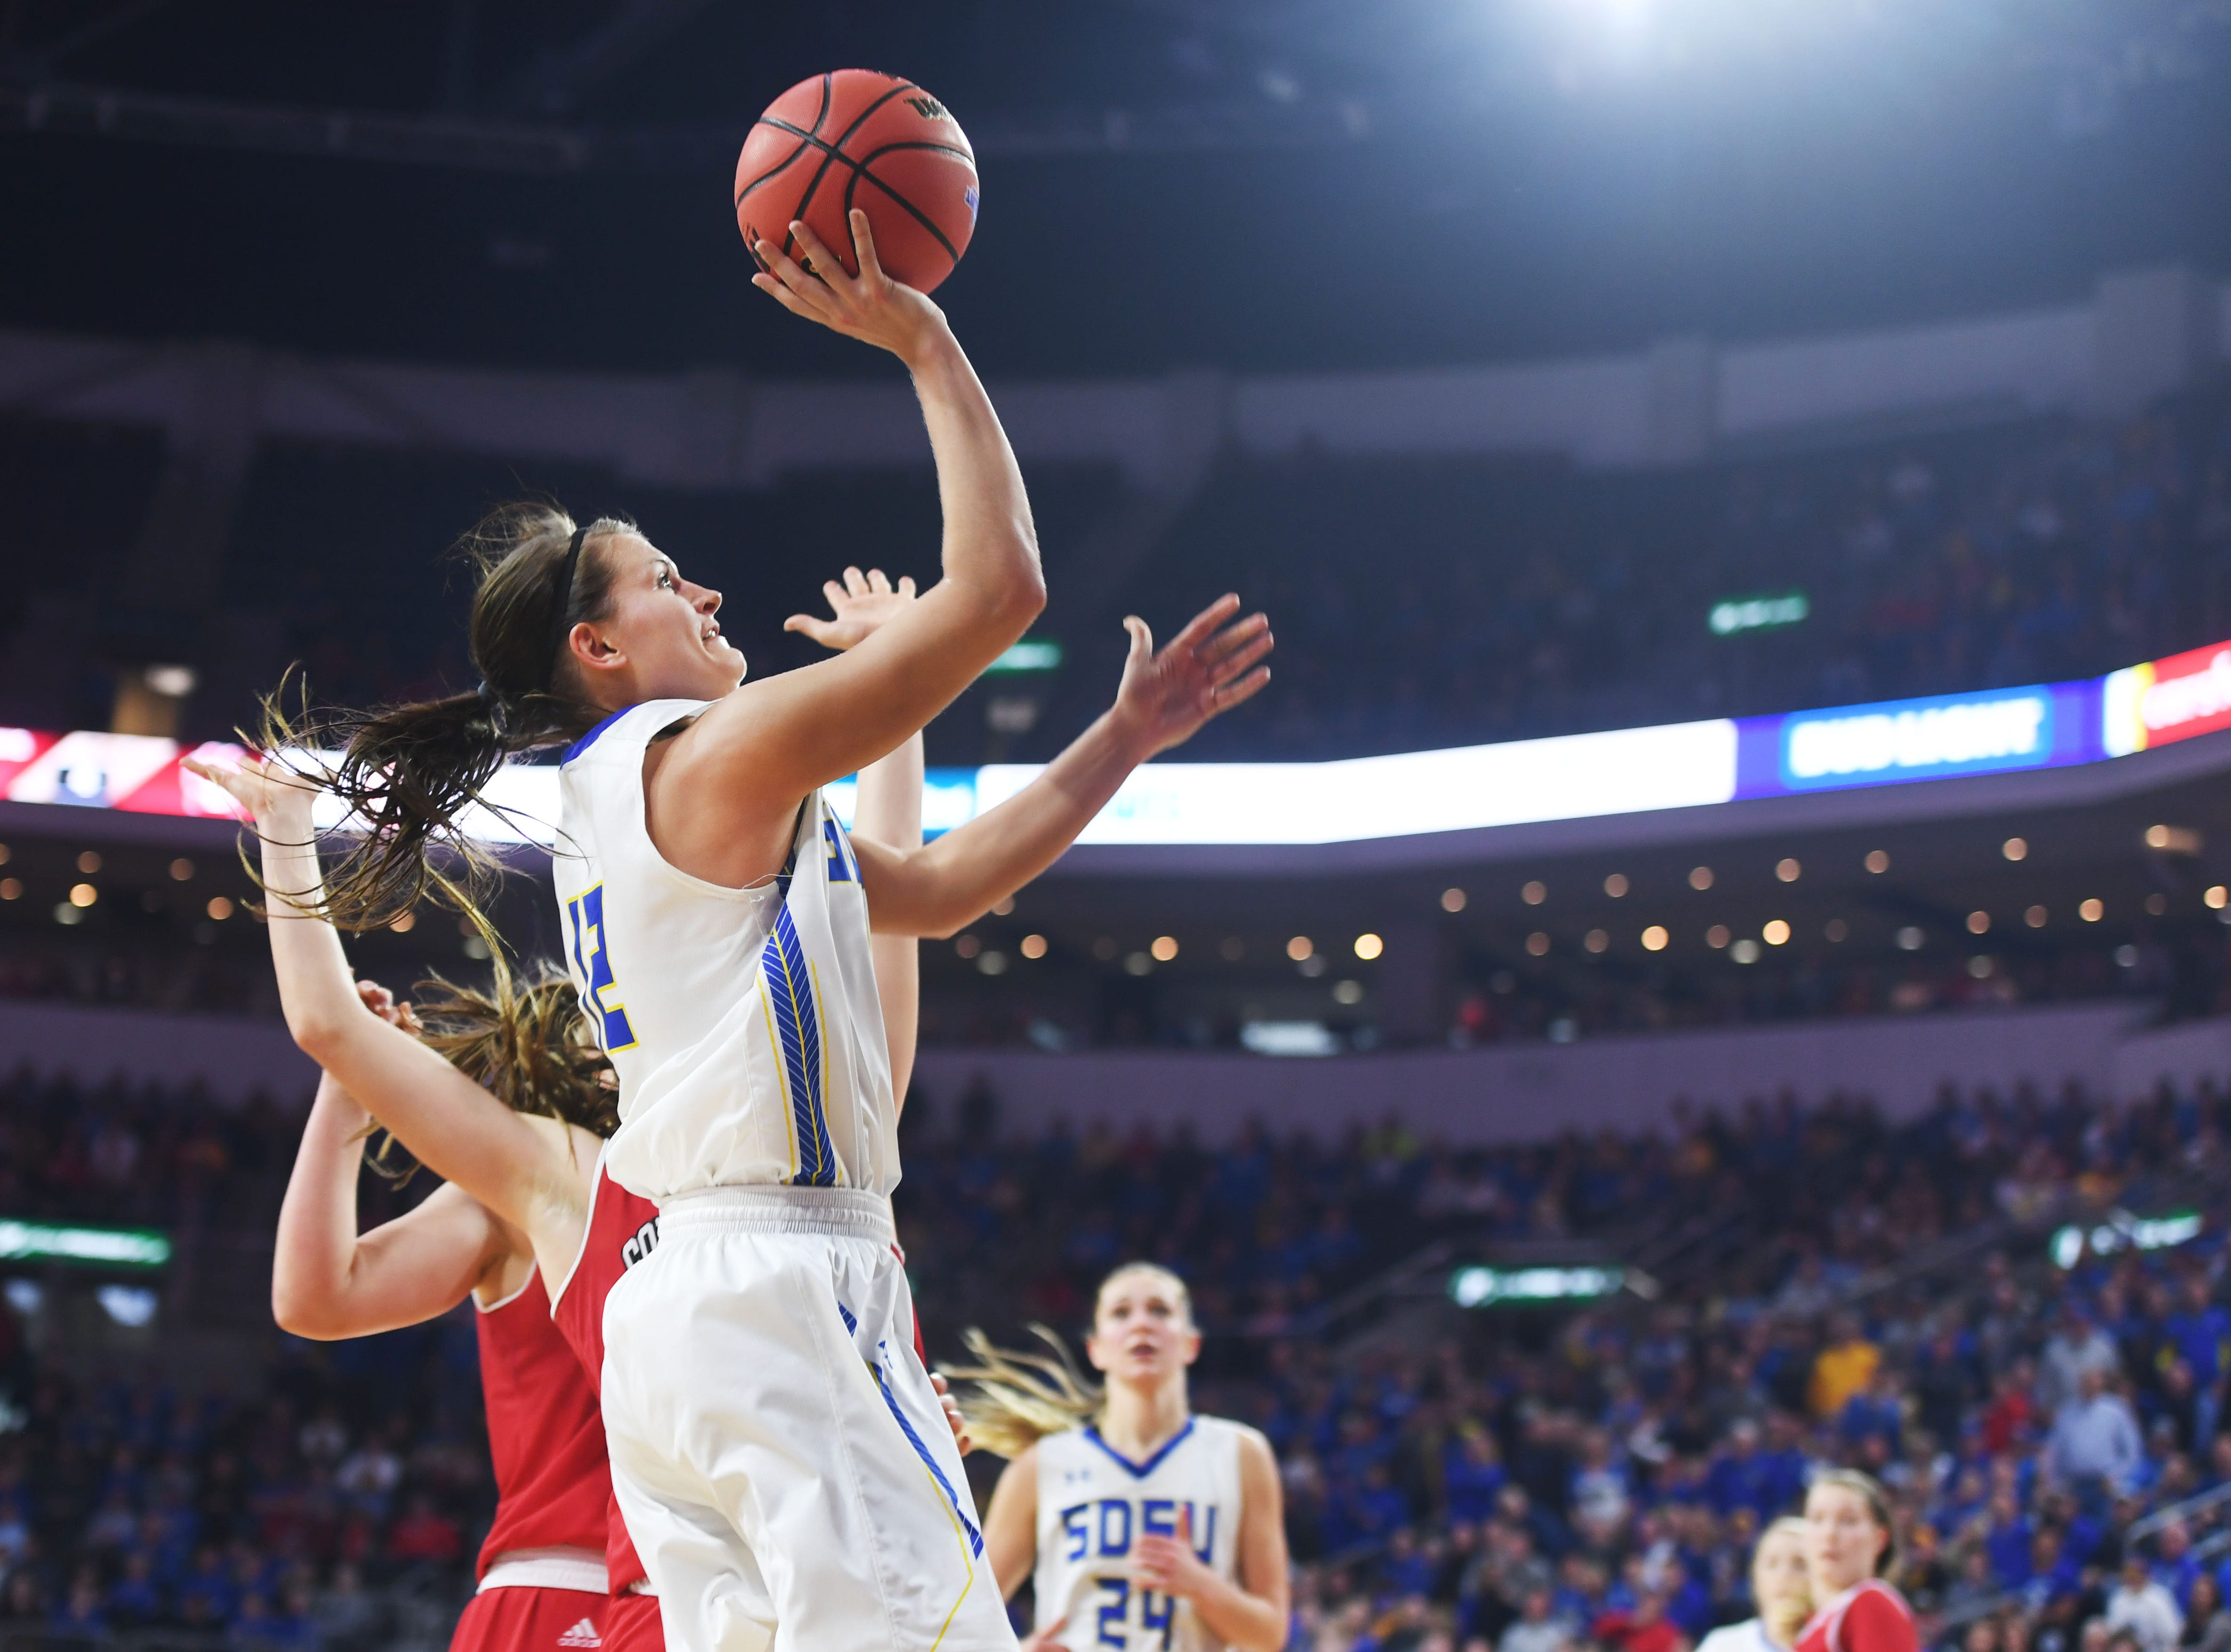 SDSU's Macy Miller scores a basket that makes her the Summit League's all-time leading scorer during the game against USD Tuesday, March 12, in the Summit League women's championship at the Denny Sanford Premier Center in Sioux Falls.